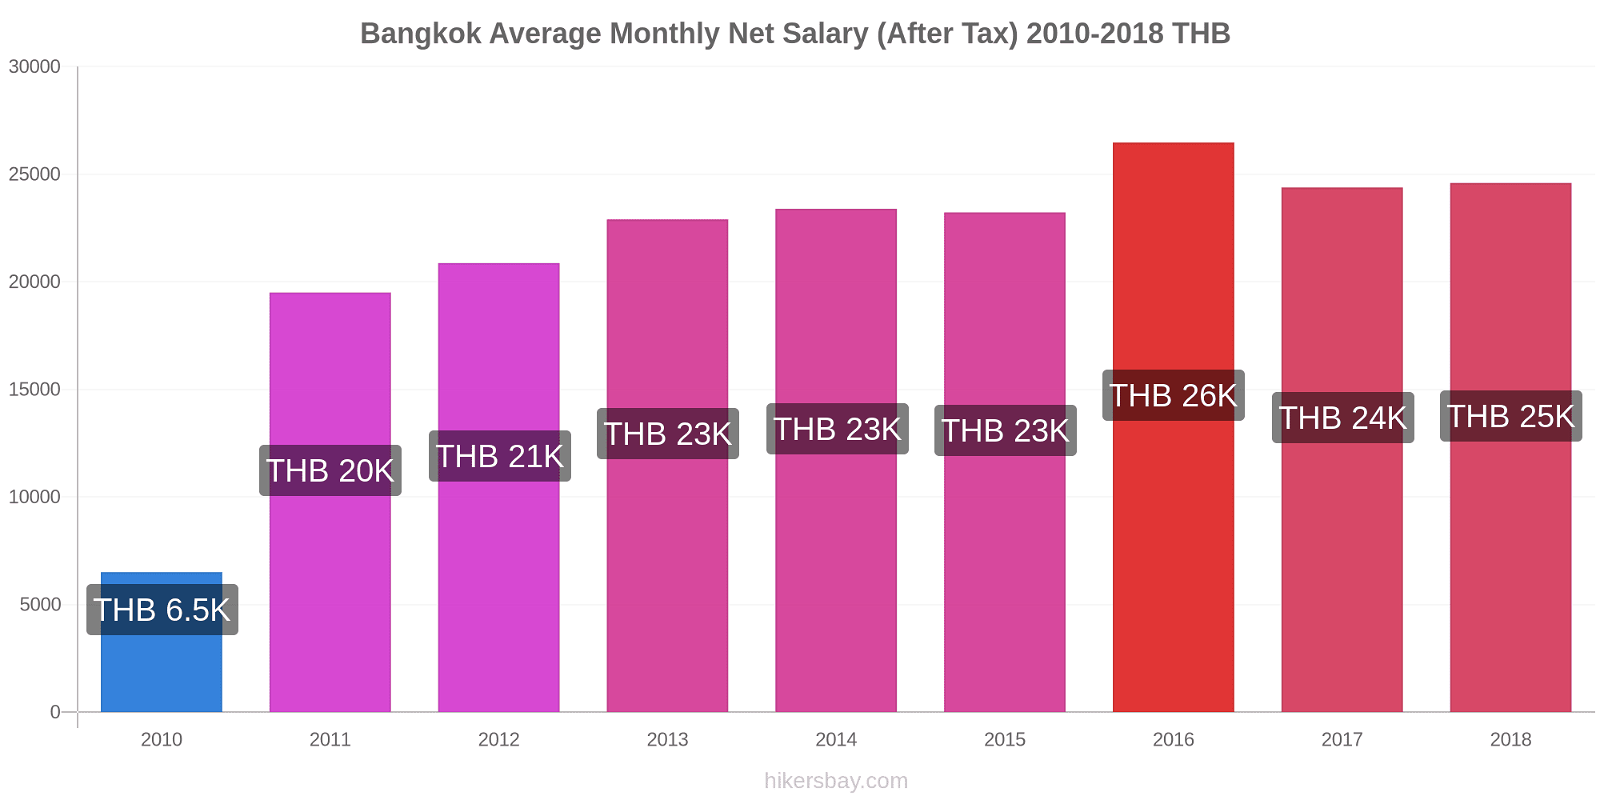 Bangkok price changes Average Monthly Net Salary (After Tax) hikersbay.com